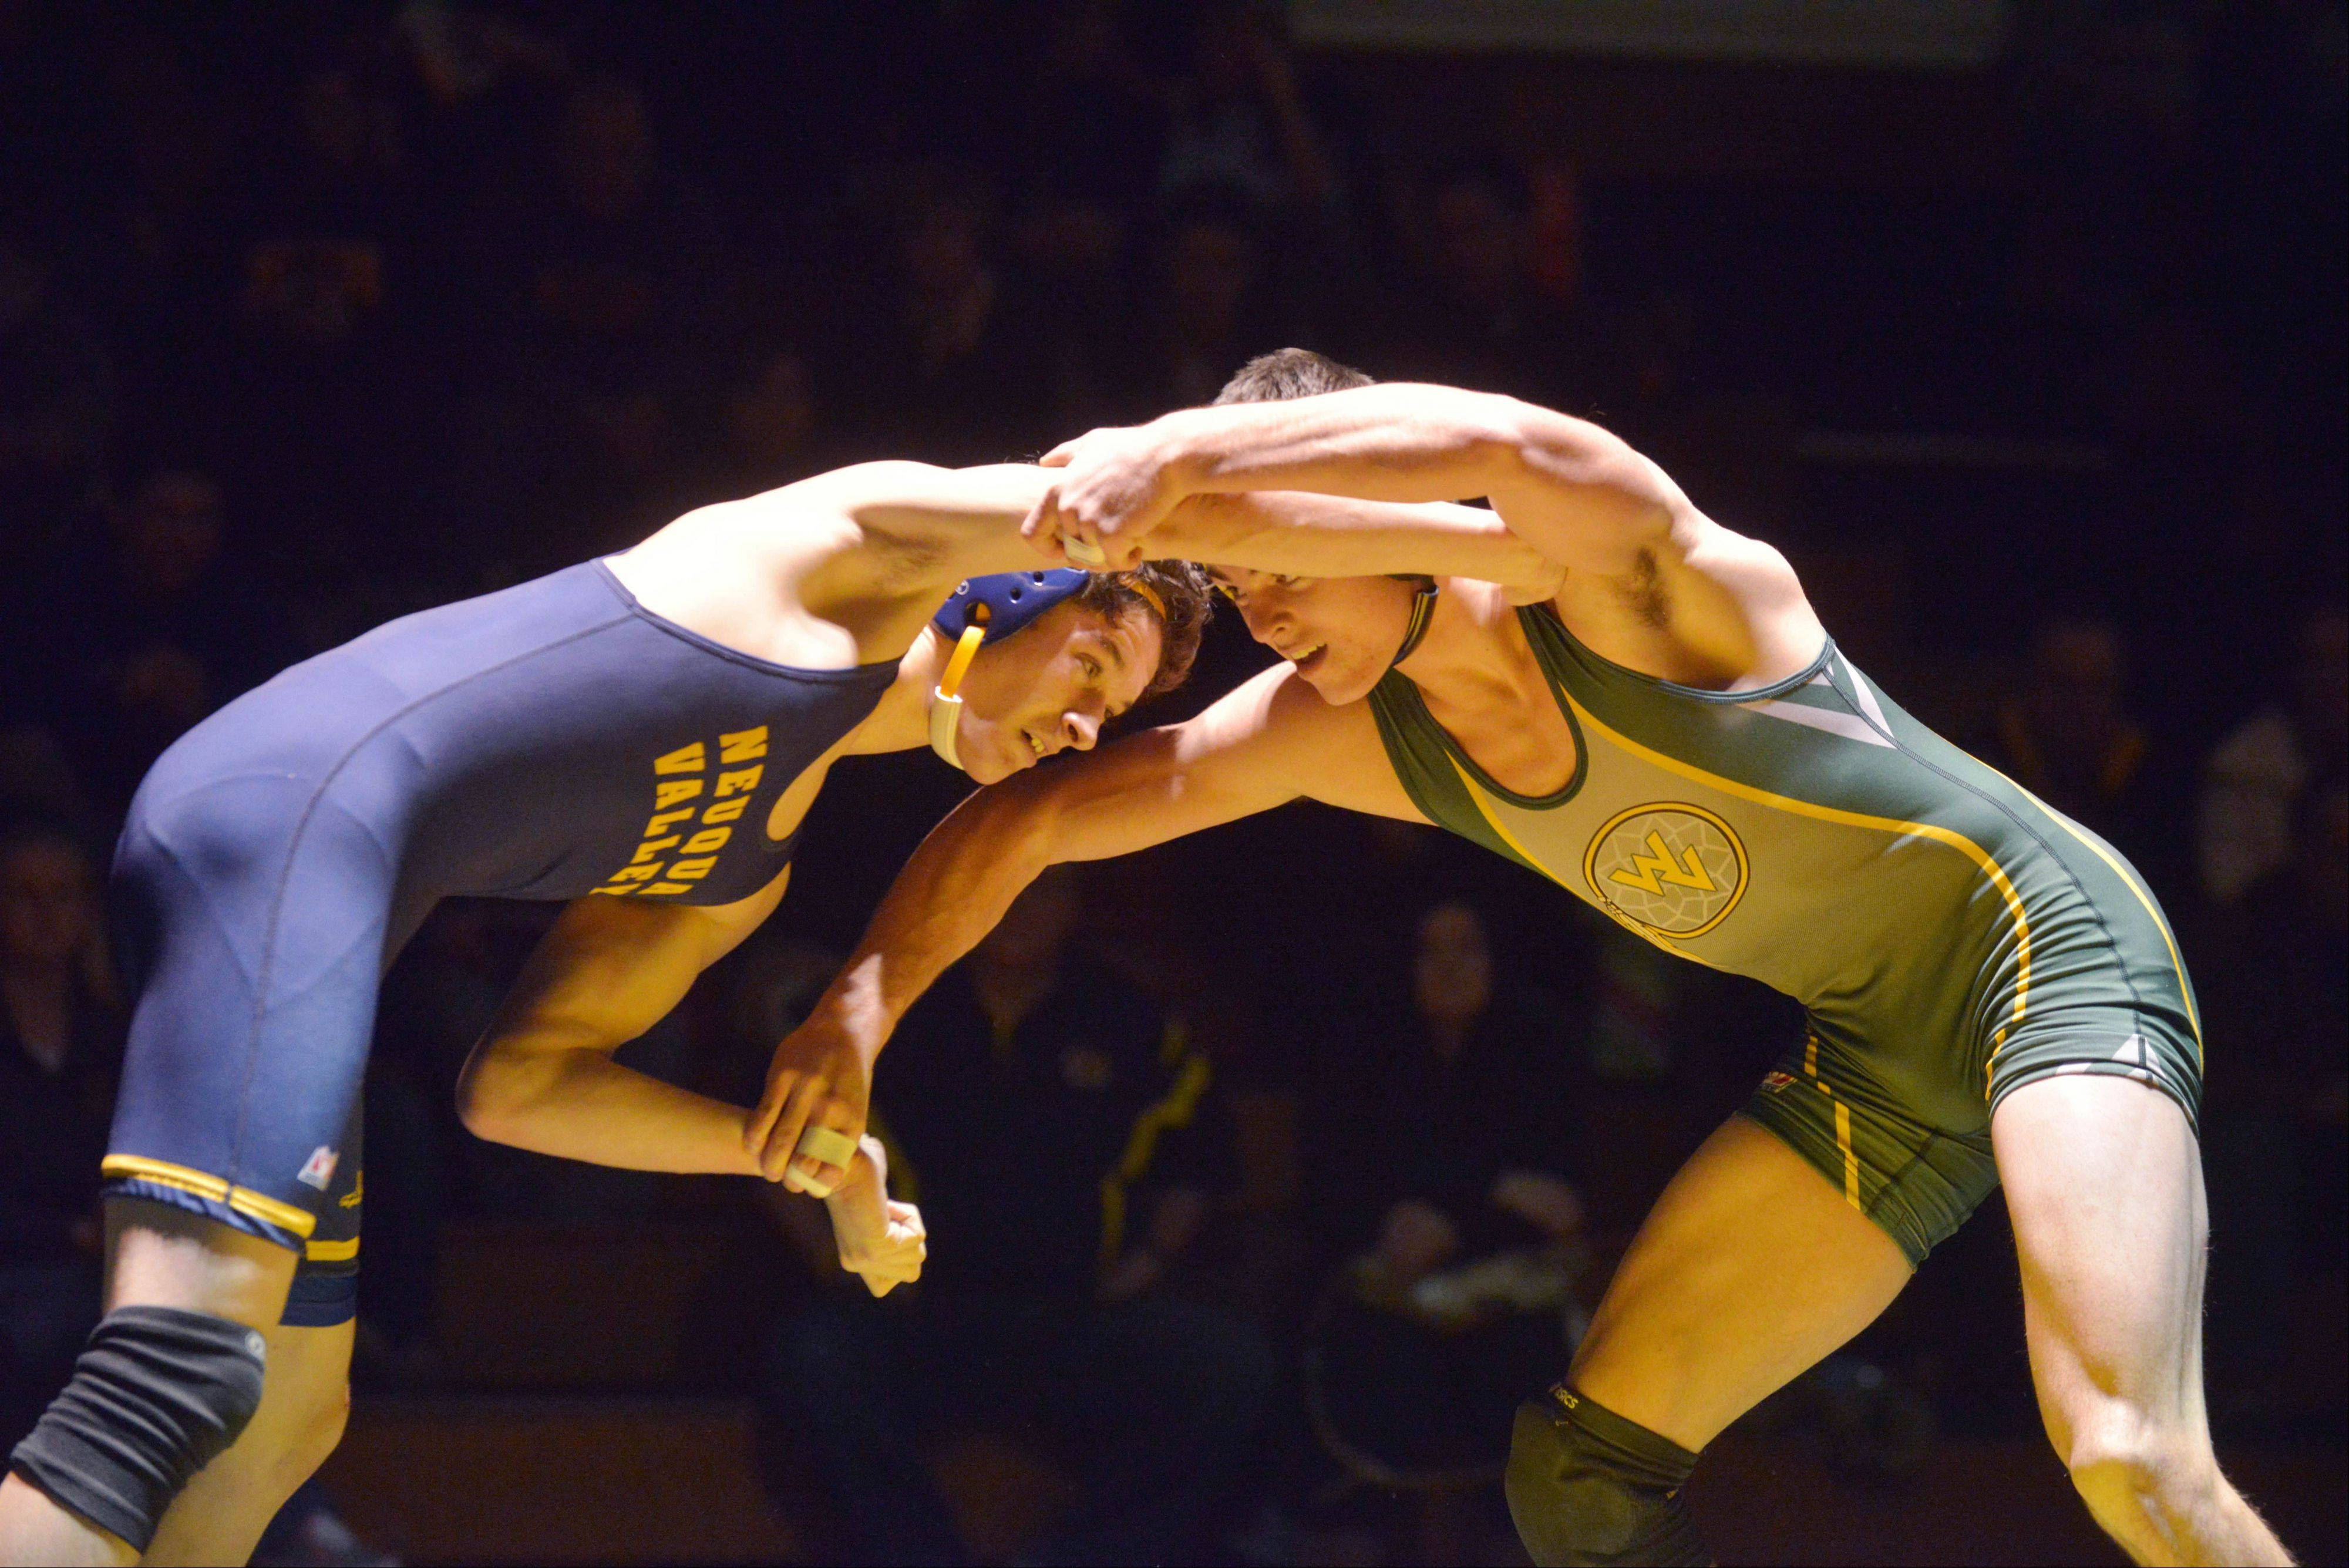 Neuqua Valley's Jackson Modaff, left, and Waubonsie Valley's Jimmy Davis wrestle in the 138-pound match during Friday's Waubonsie Valley wrestling meet.